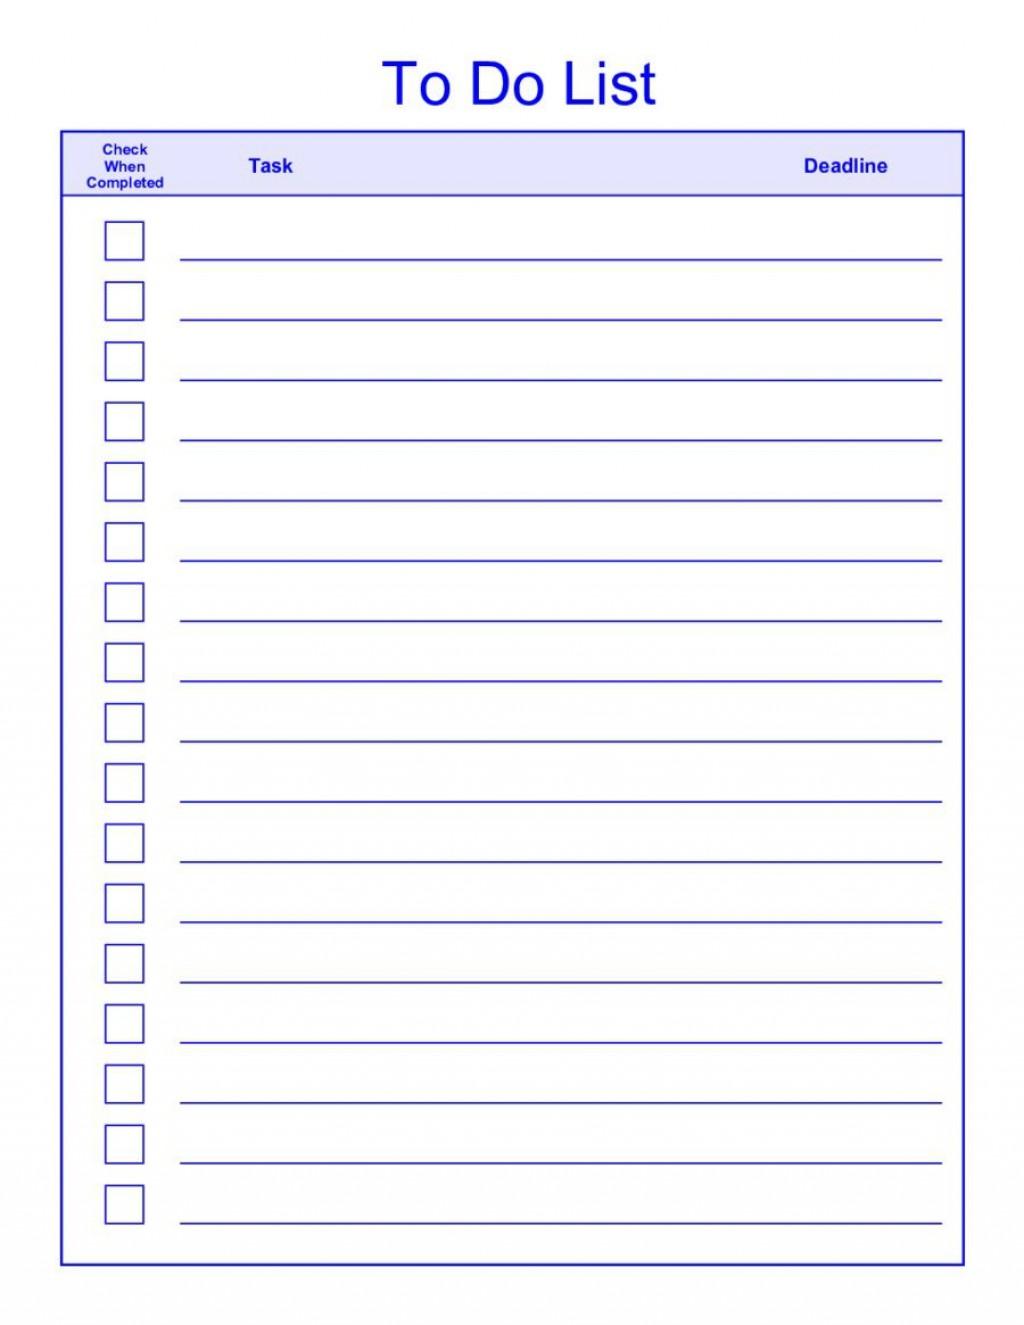 008 Wondrou Thing To Do List Template Concept Large